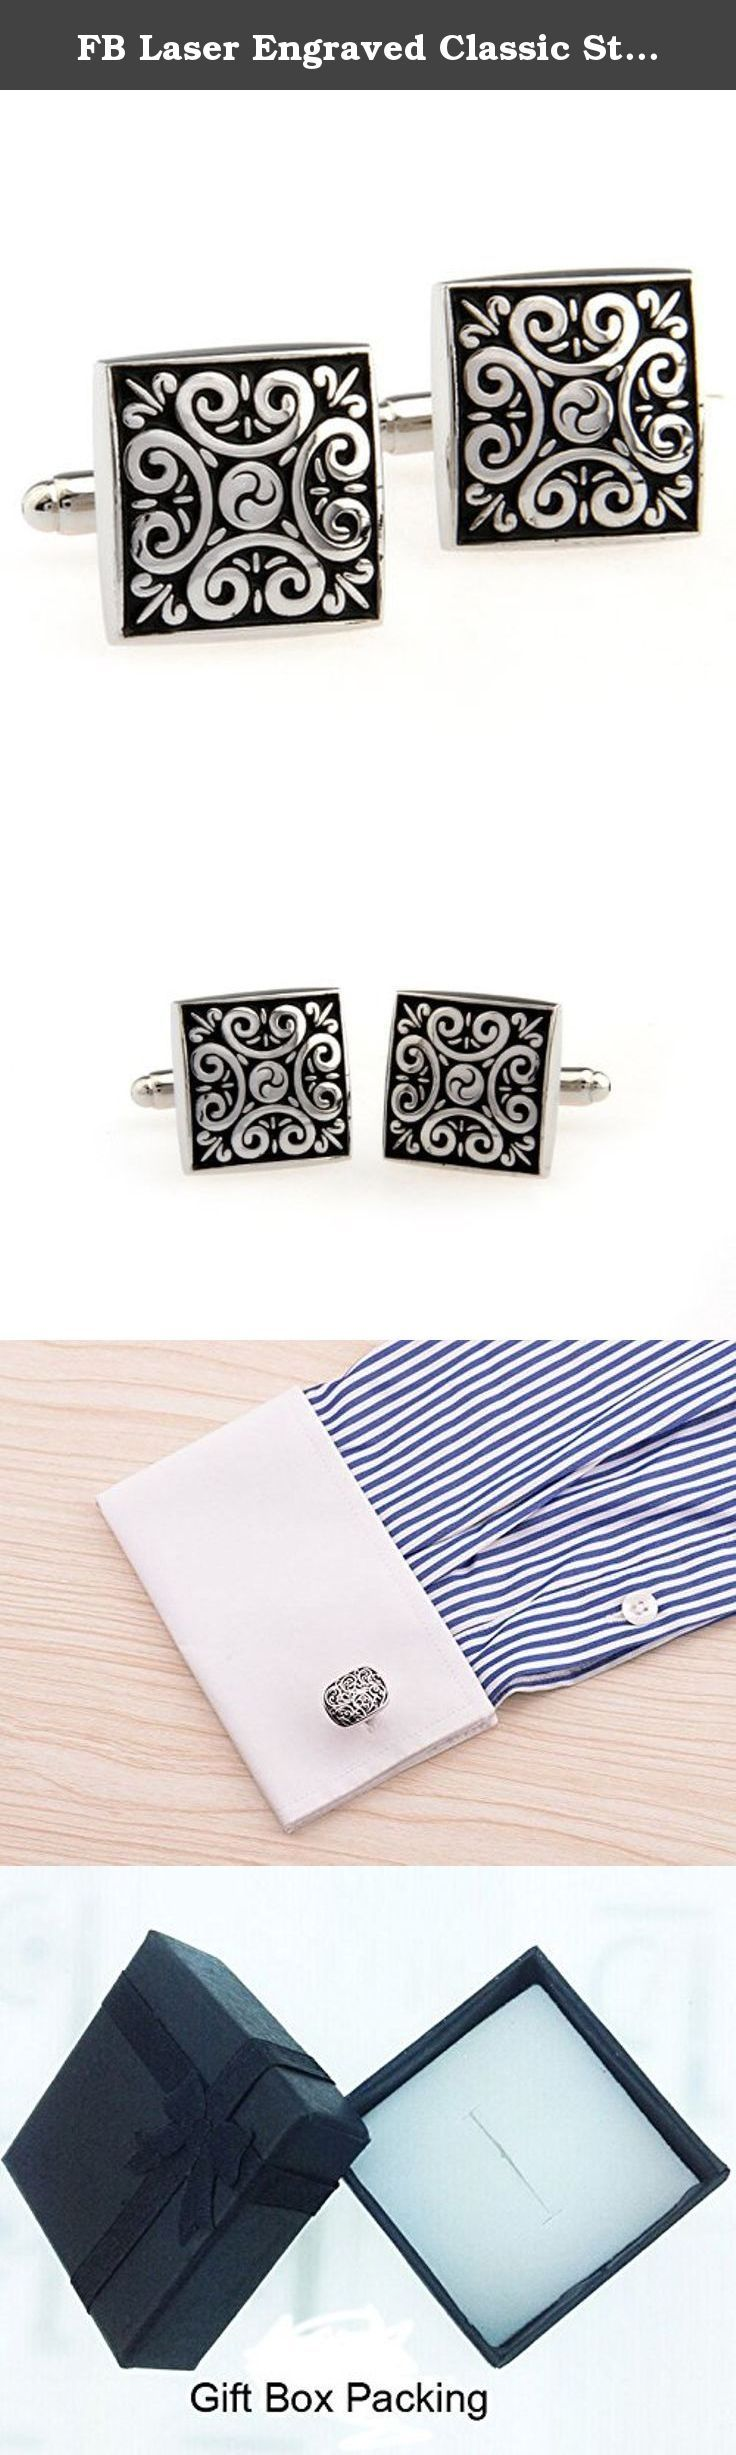 FB Laser Engraved Classic Style Cufflinks Hot Sale Styles for Men. 1. Dress your suits and shirts up, match you in all the seasons 2. 100% stainless with engraved impression 3. It is a good gift set for gentleman 4. Very good quality with simple design, also in good price. 5. Free shipping and comes with a gift box.